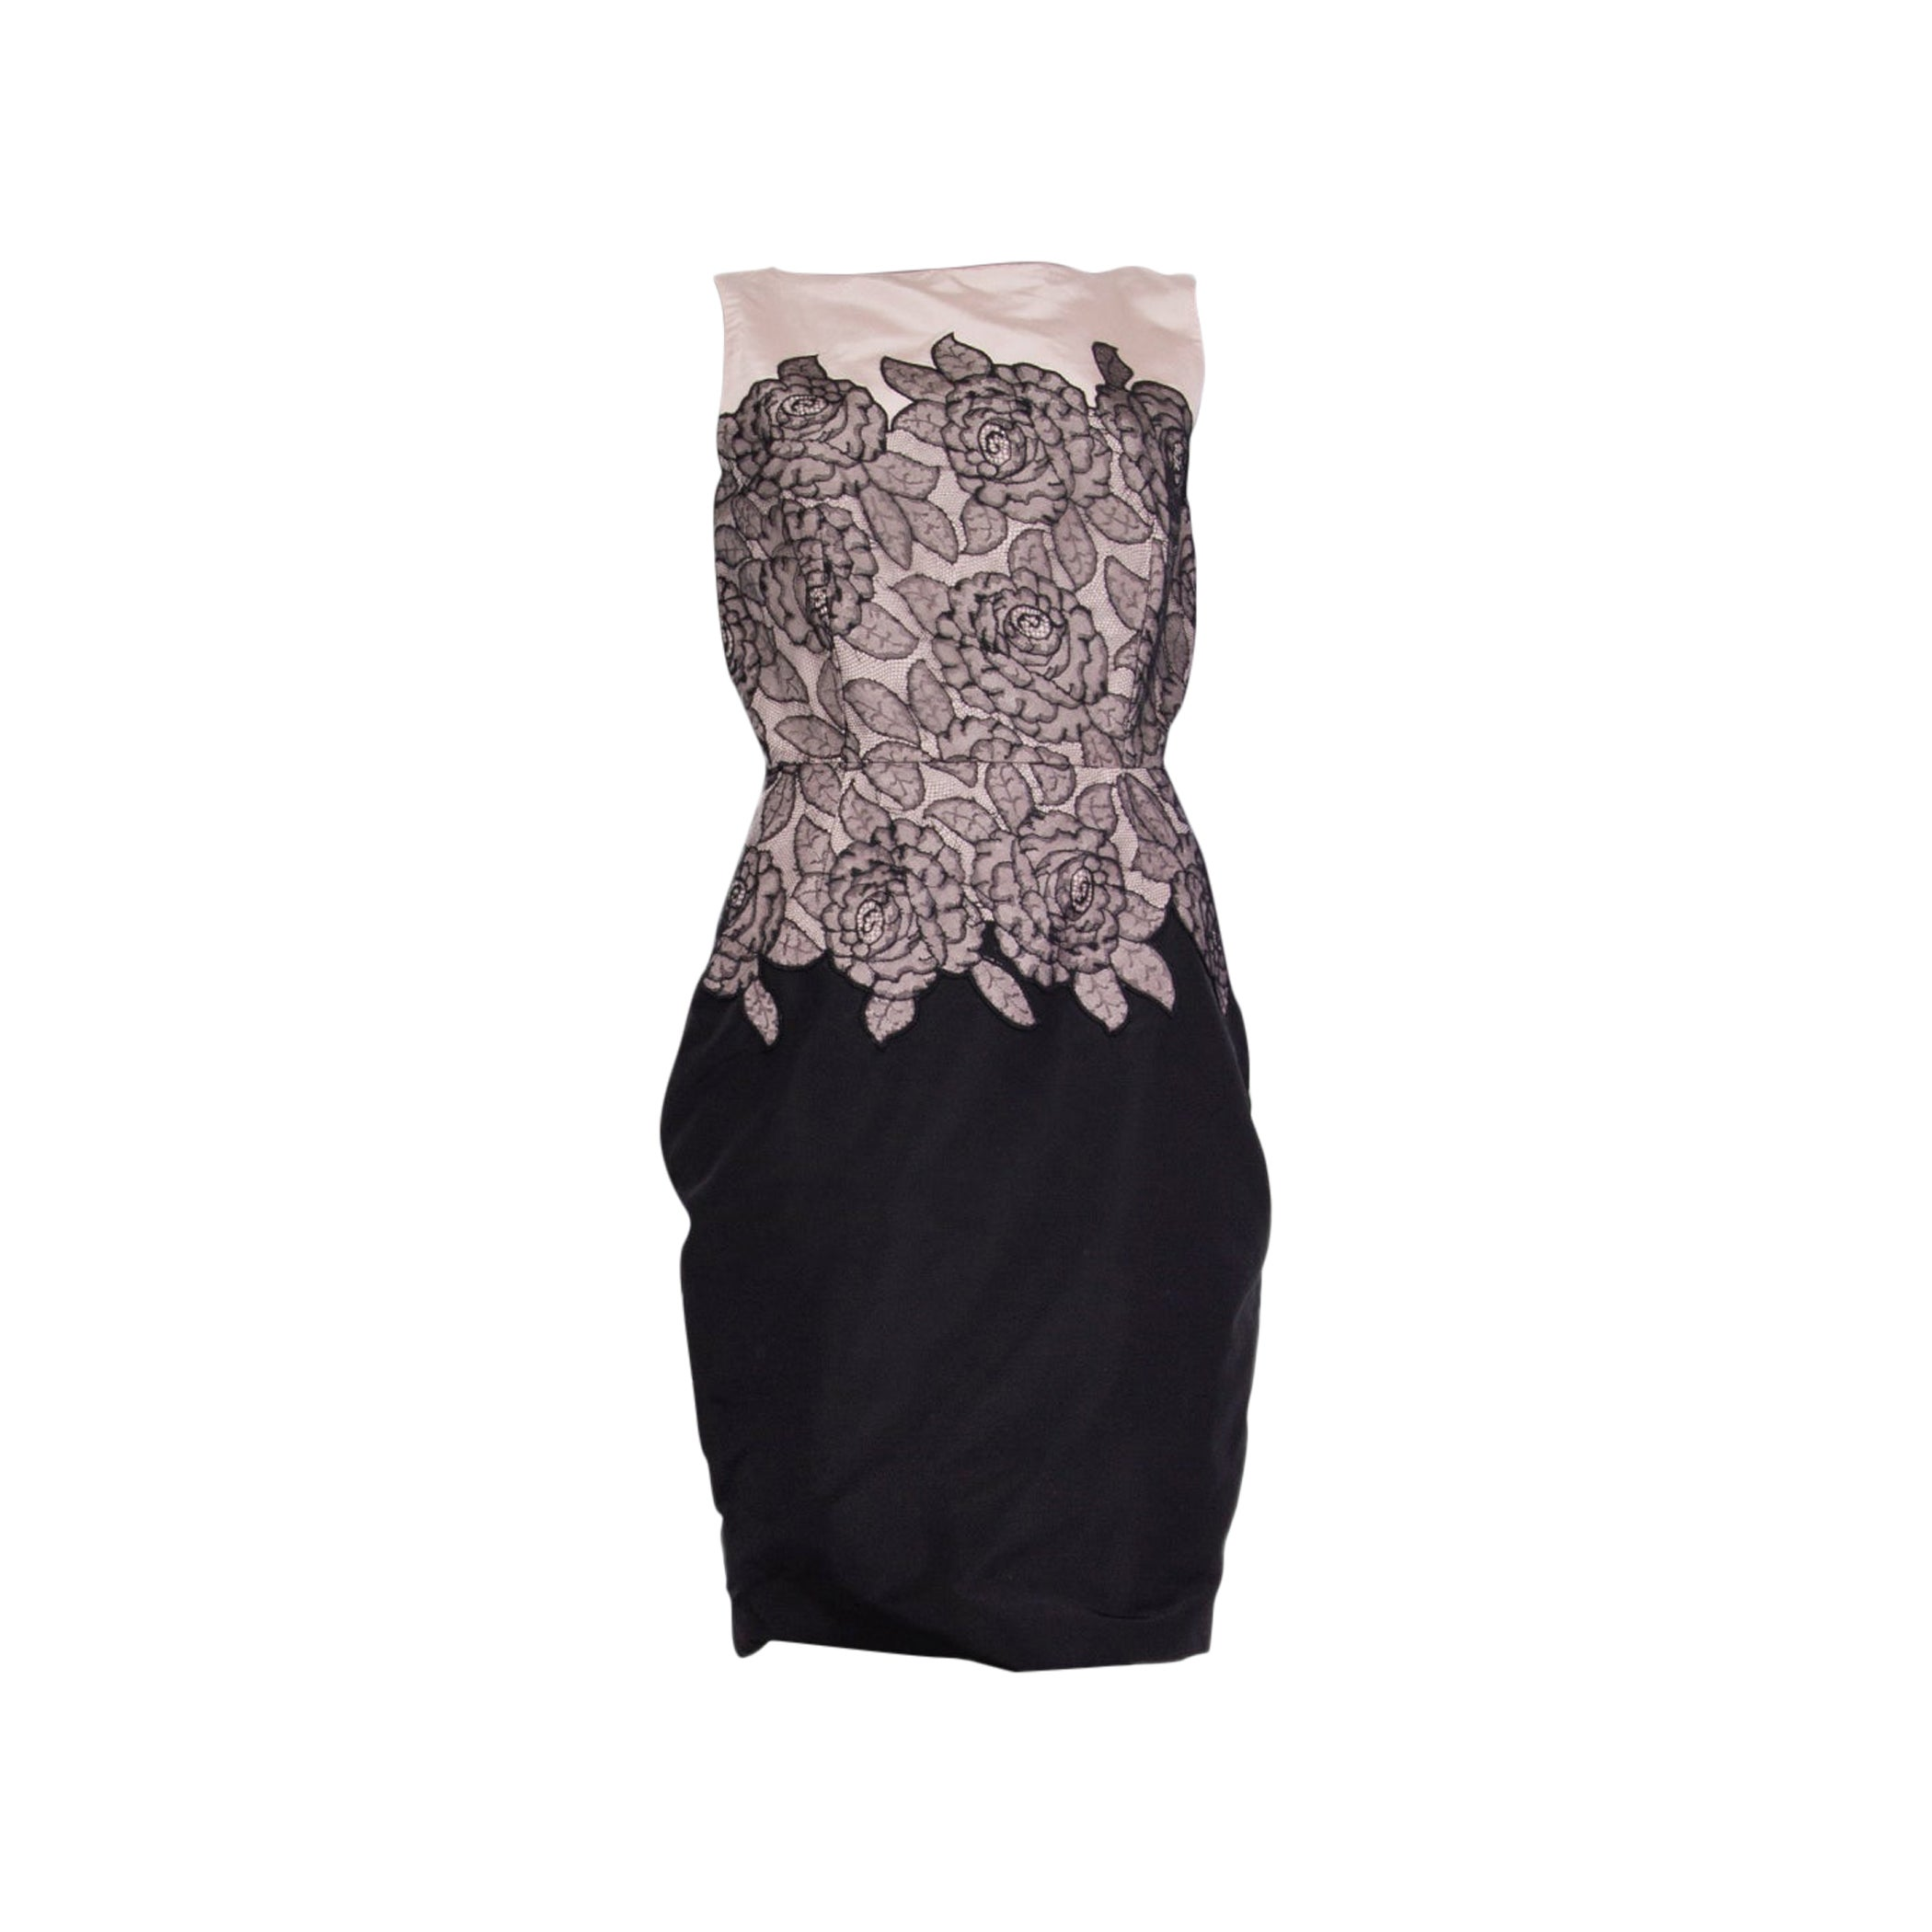 CHRISTIAN DIOR pink & black silk FLORAL LACE Cocktail Dress S